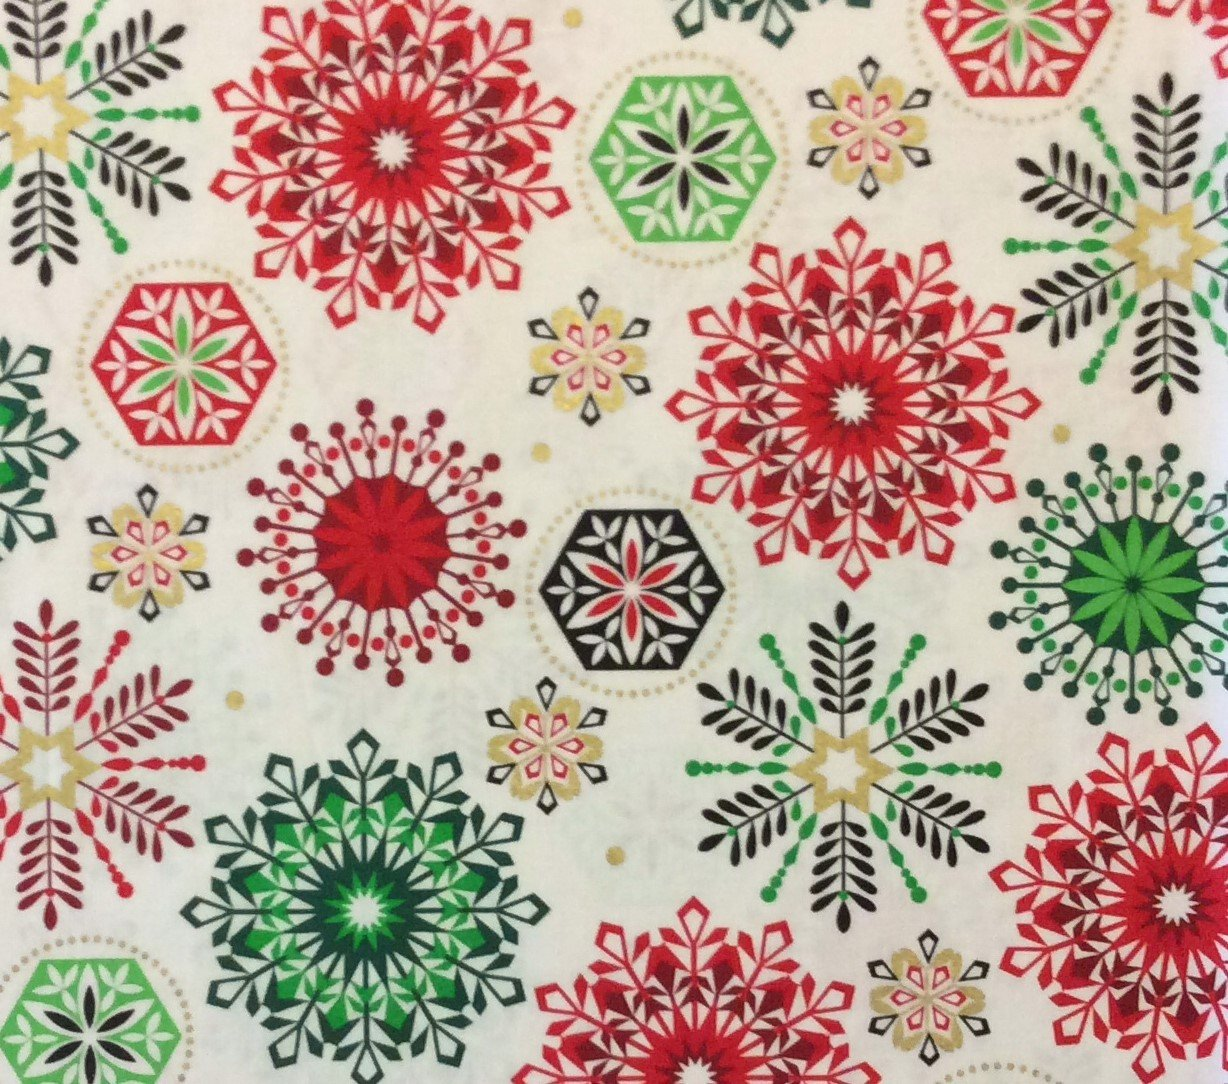 MD237 Snowflake Winter Christmas Holiday Season Red Green Cotton Quilting Fabric